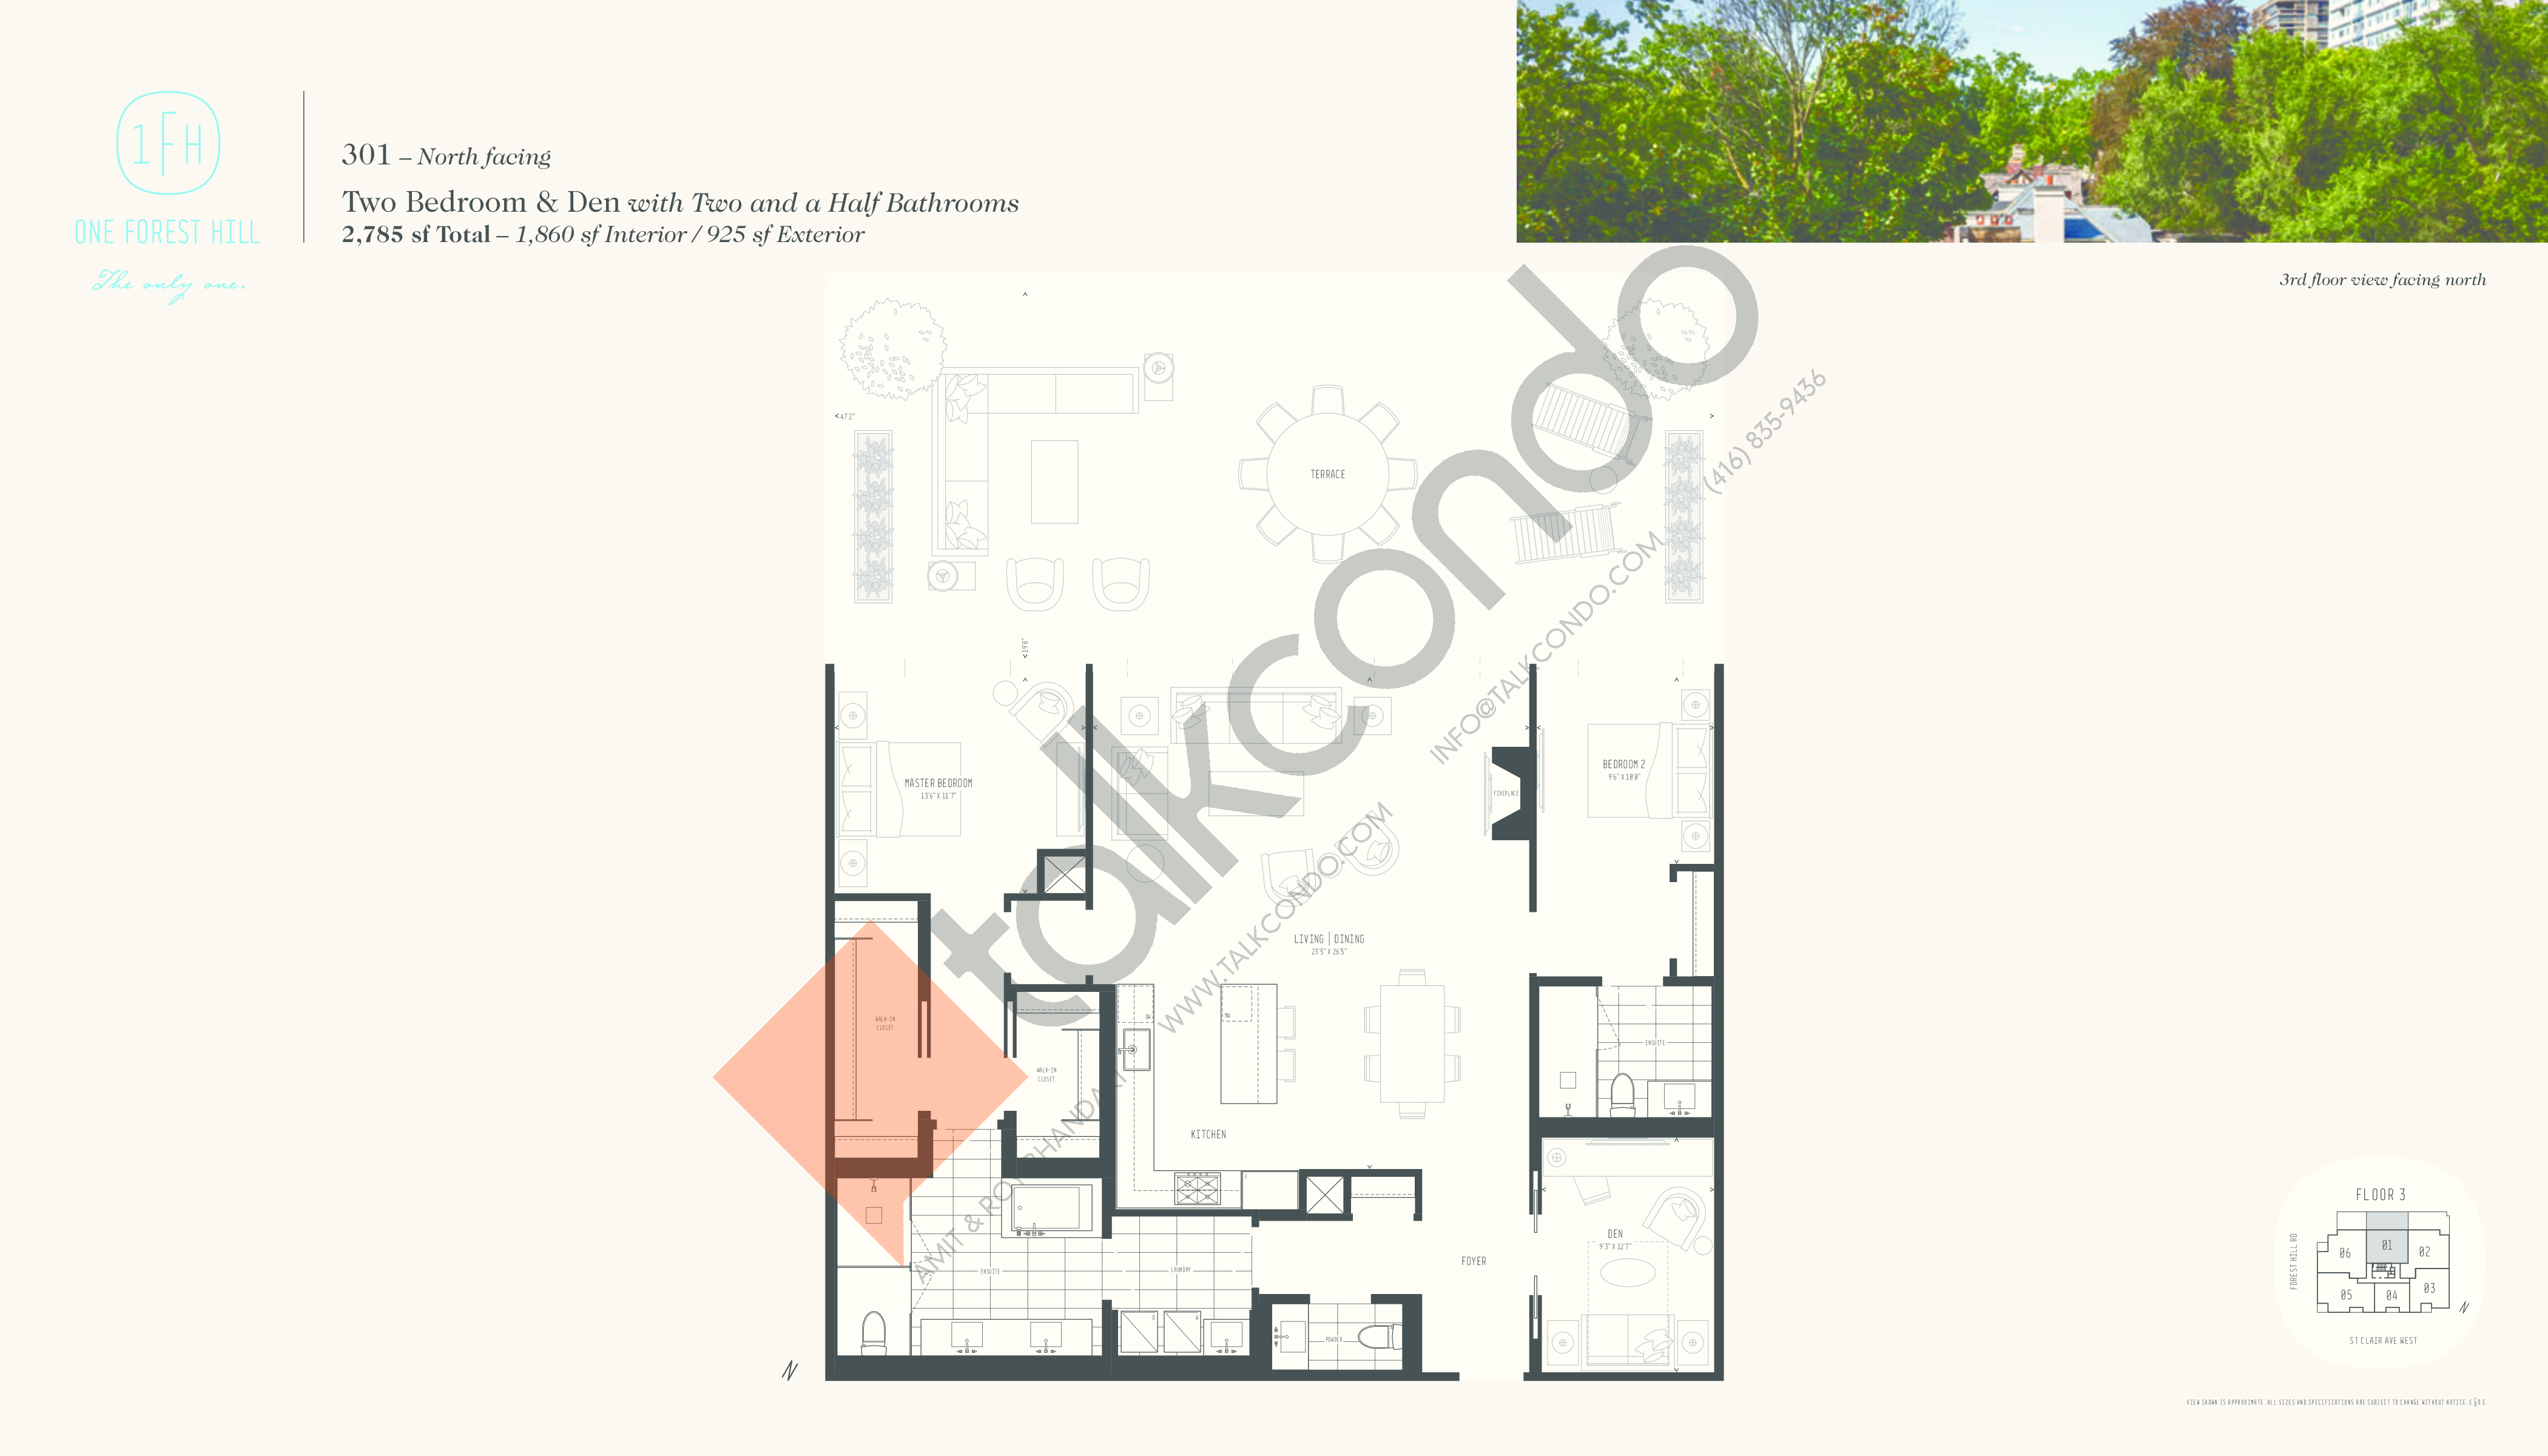 301 Floor Plan at One Forest Hill Condos - 1860 sq.ft